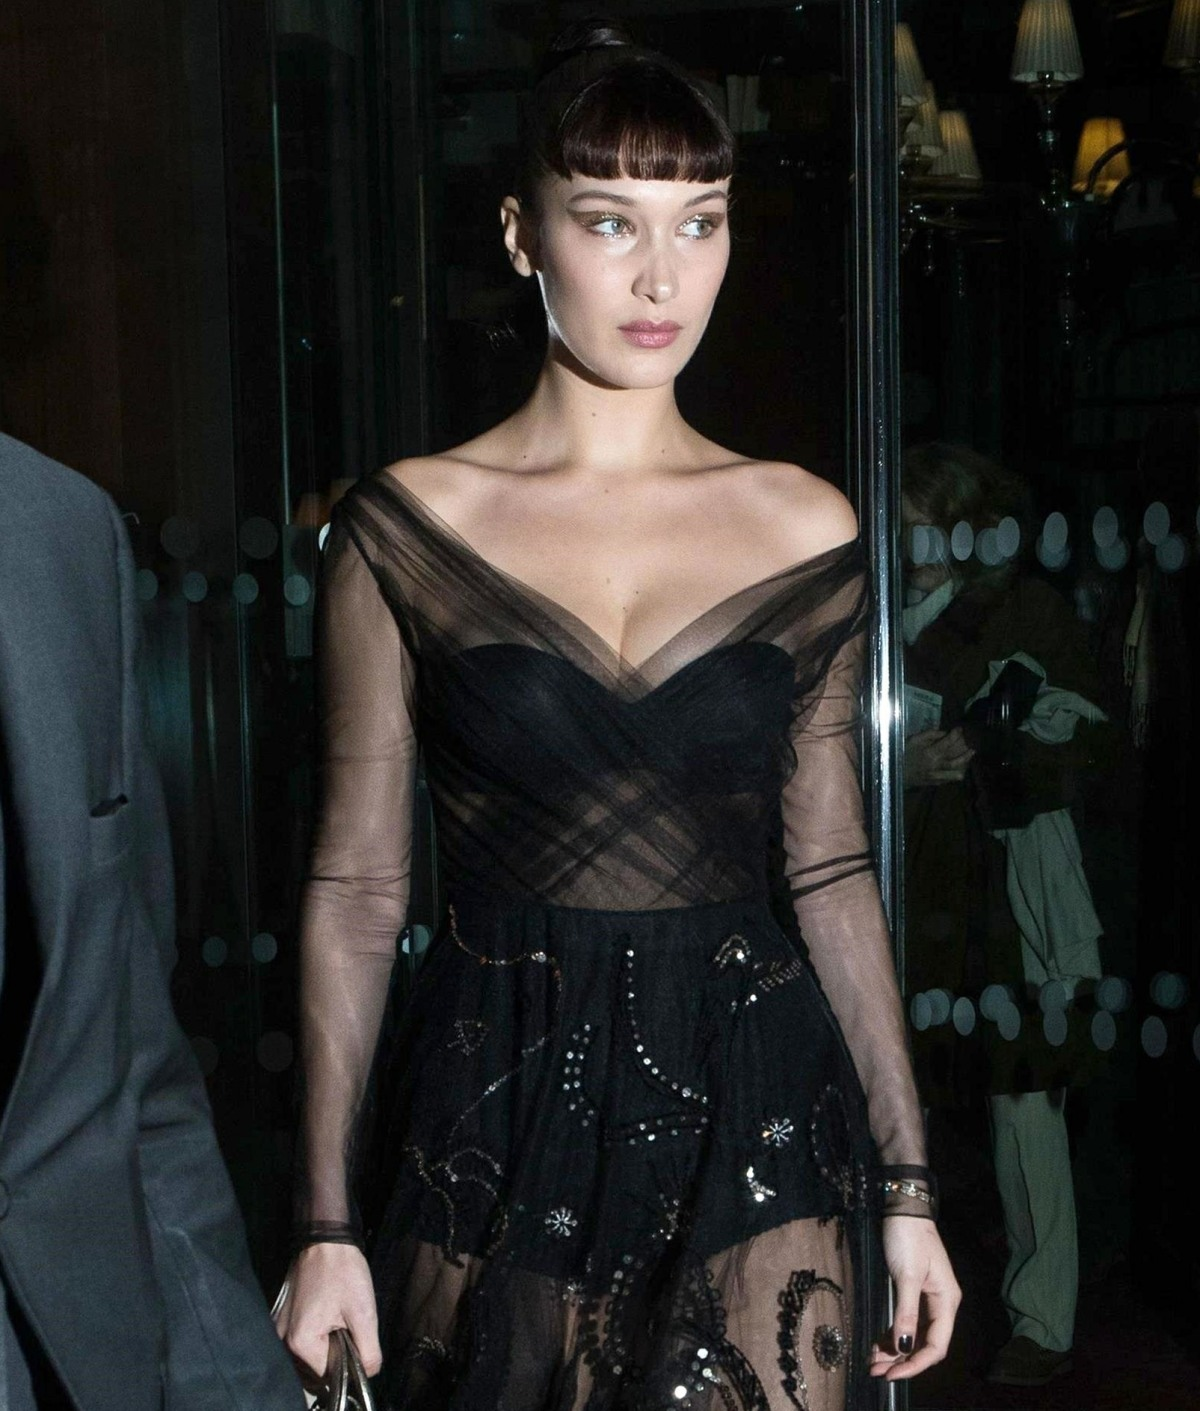 Bella Hadid and Fanny Bourdette-Donon arrive at the Christian Dior afterparty in Paris